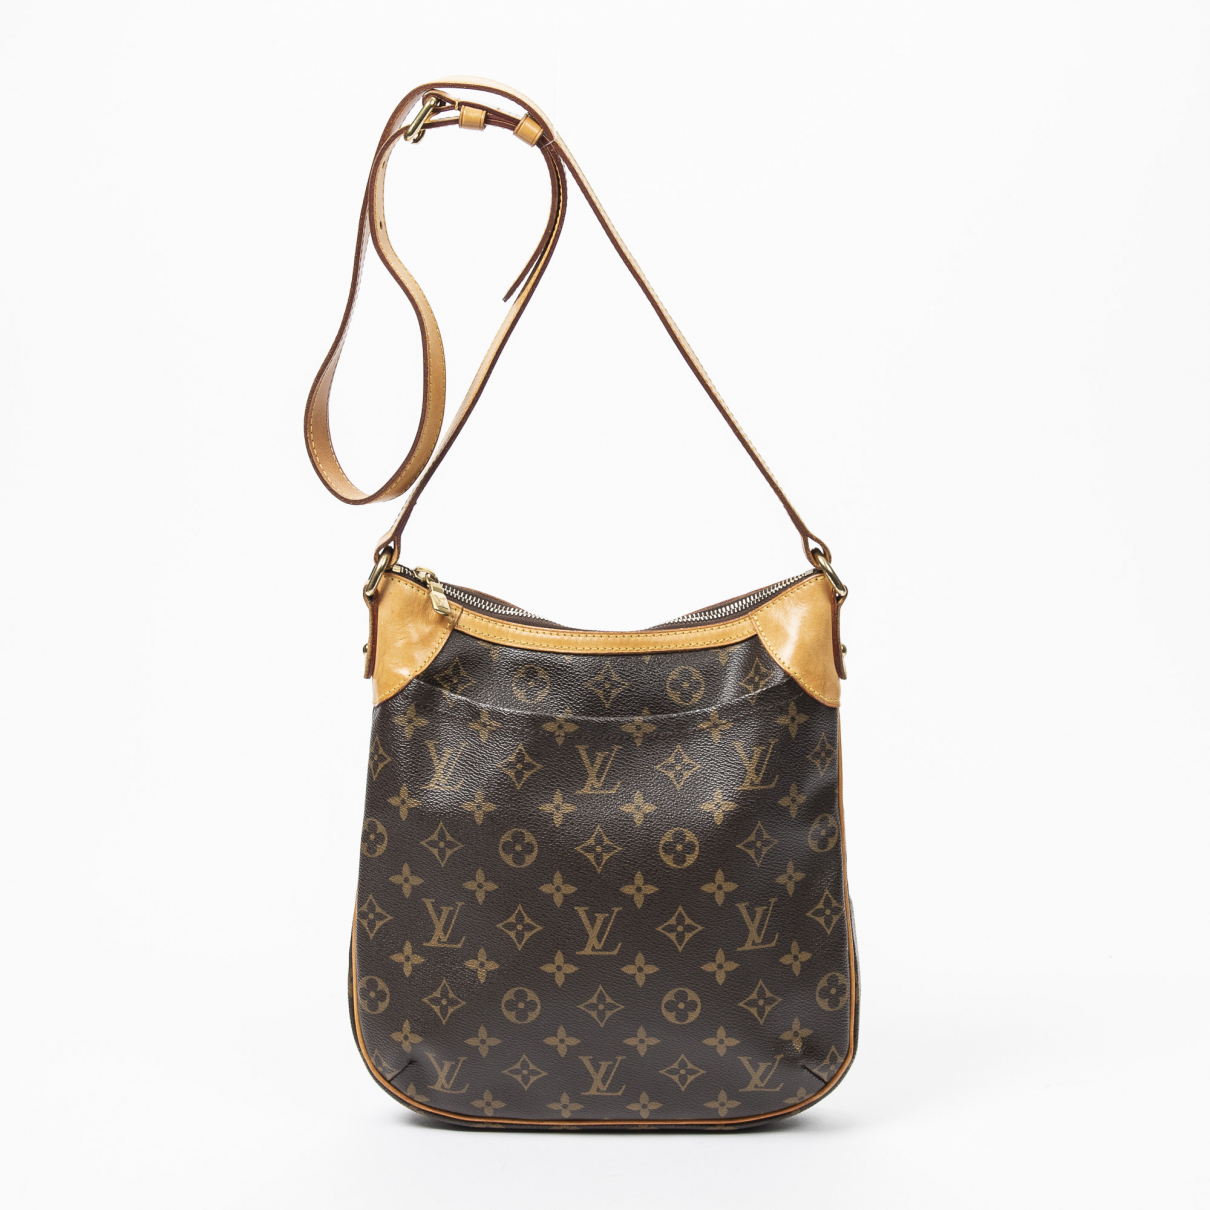 Louis Vuitton Odeon Handtasche in  Braun Baumwolle